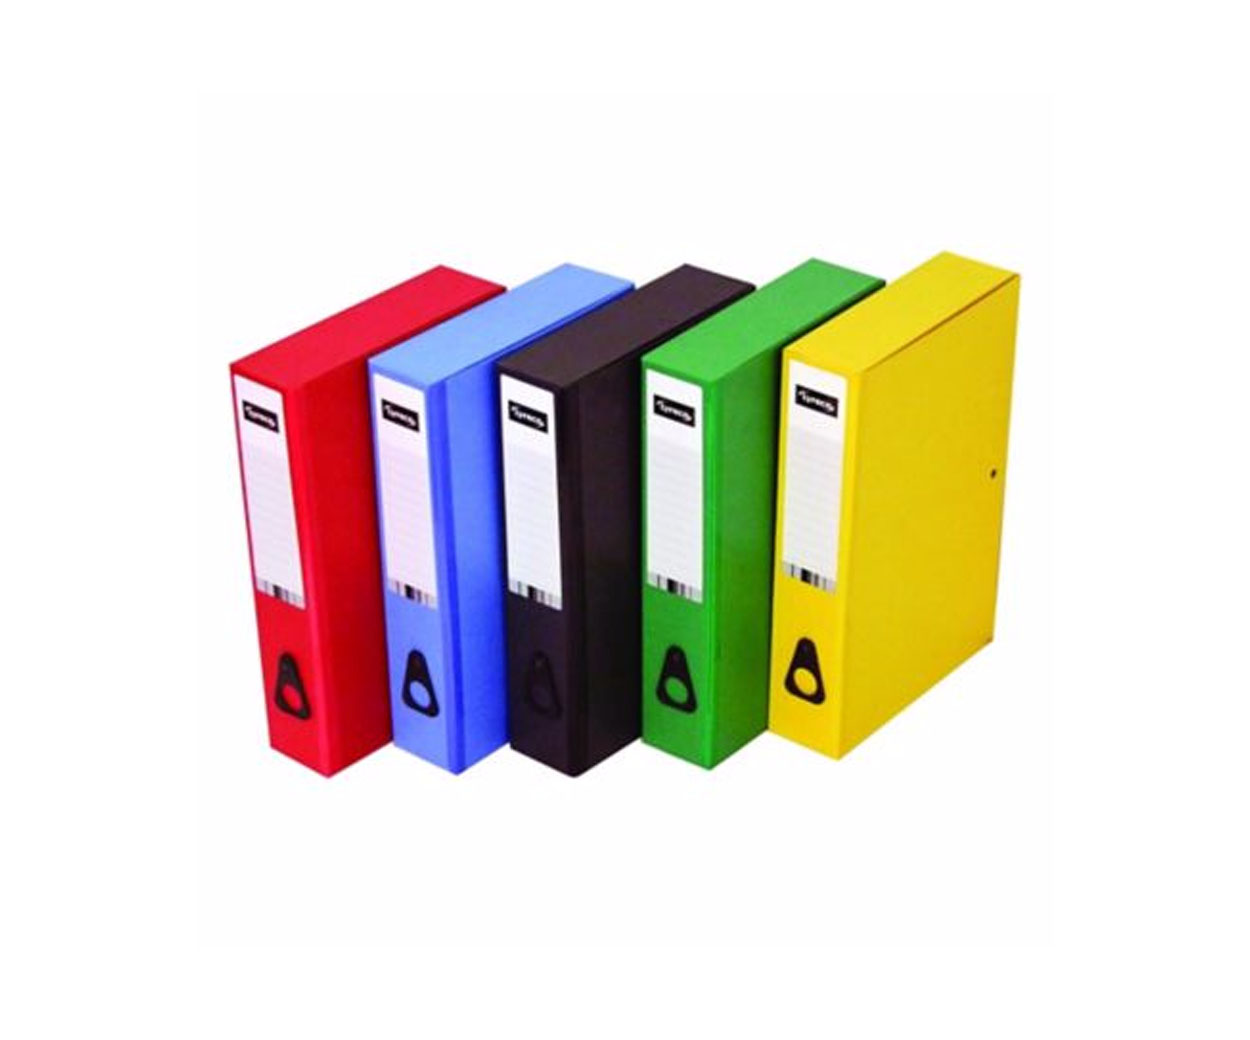 Box File Foolscap - Out of Stock